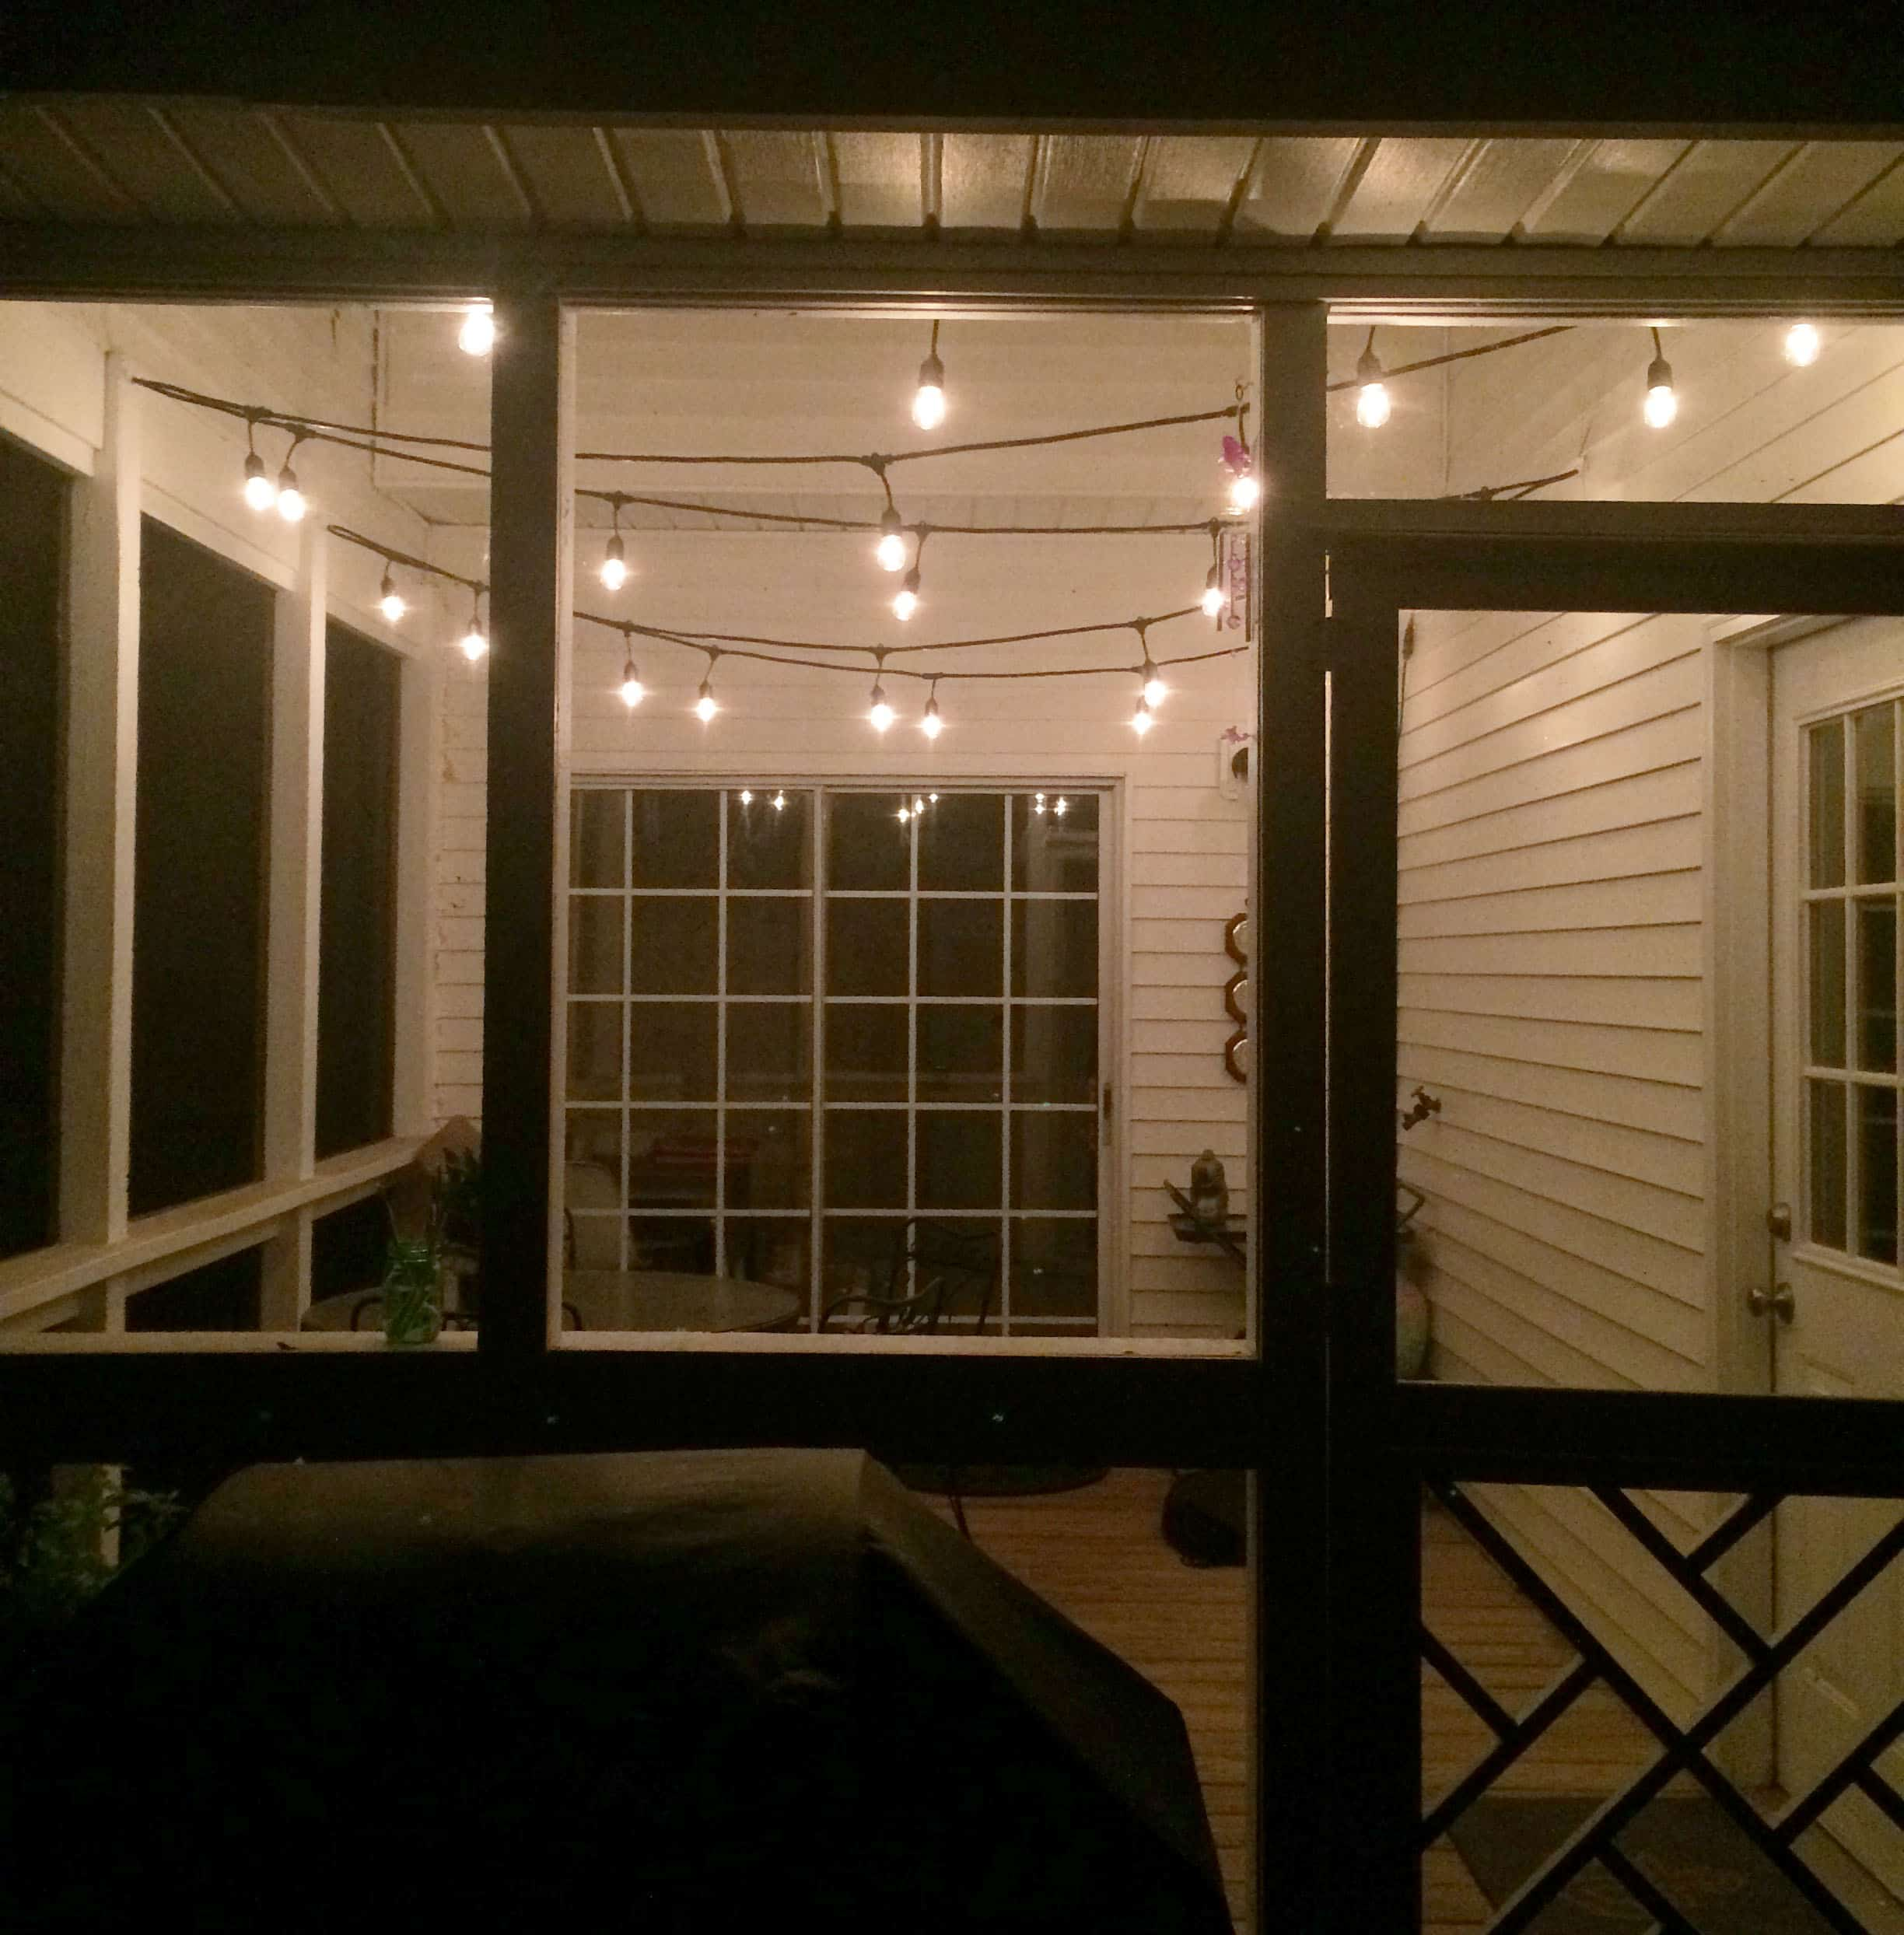 How To Hang String Lights On Screened Porch : String Lights for the Screened Porch Charleston Crafted